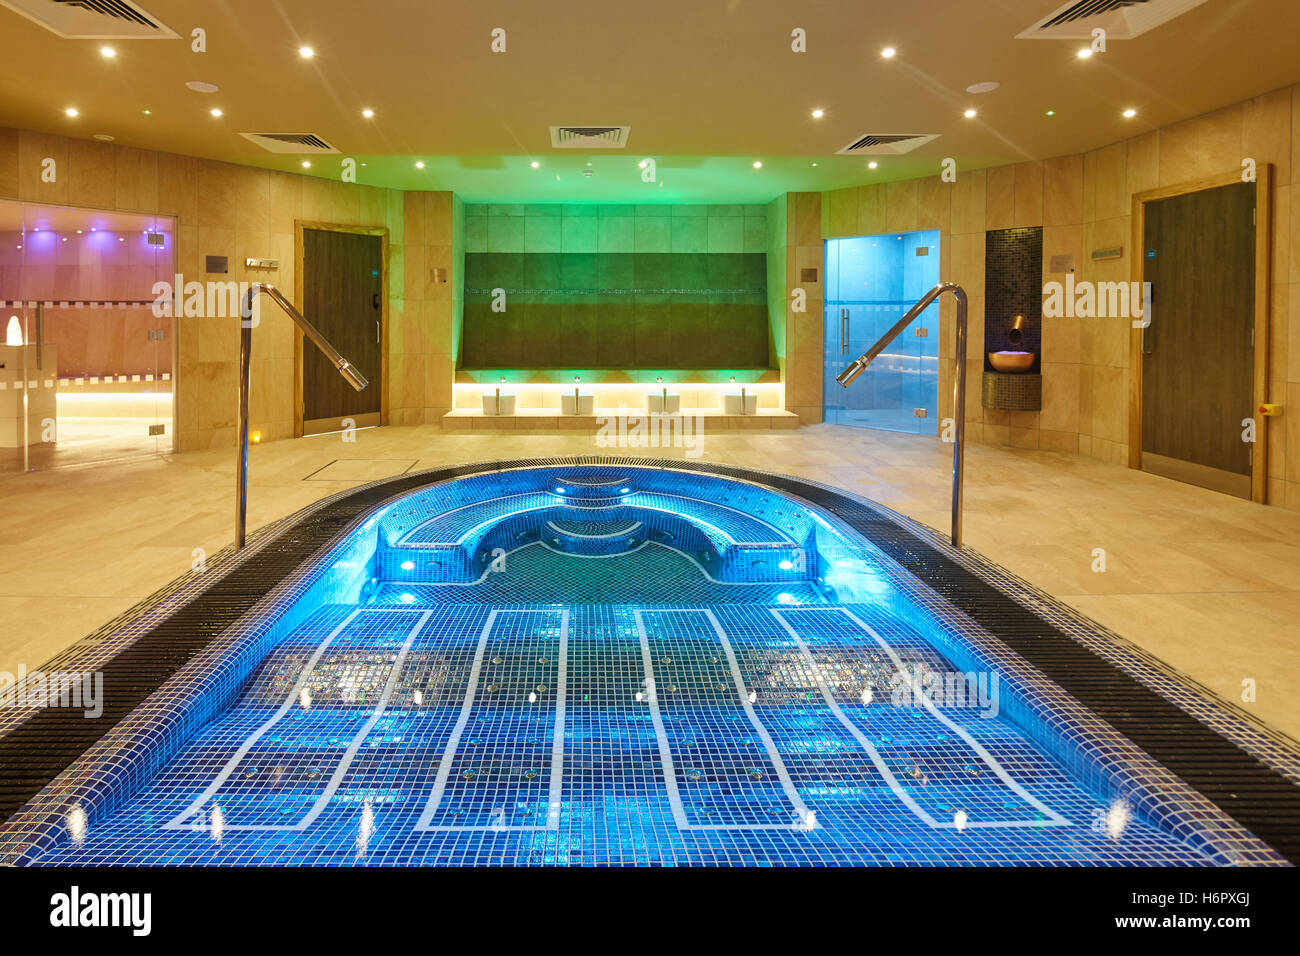 Jacuzzi Pool Deluxe Spa Pool Interior Modern Posh Clean Inside Spa Nelson Sauna Space